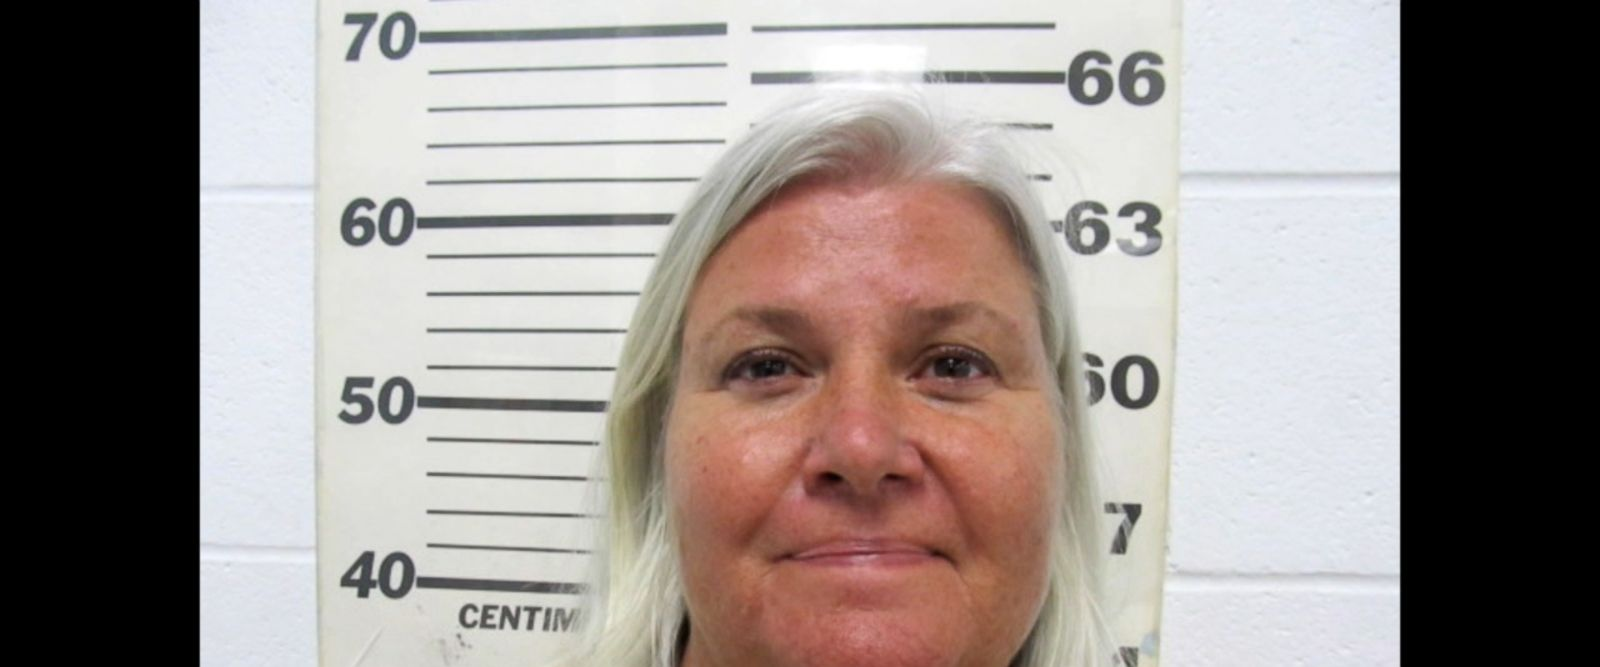 VIDEO: Lois Riess, 56, was wanted for allegedly fatally shooting her husband in Minnesota and then killing and stealing the identity of 59-year-old Pamela Hutchinson in Florida.